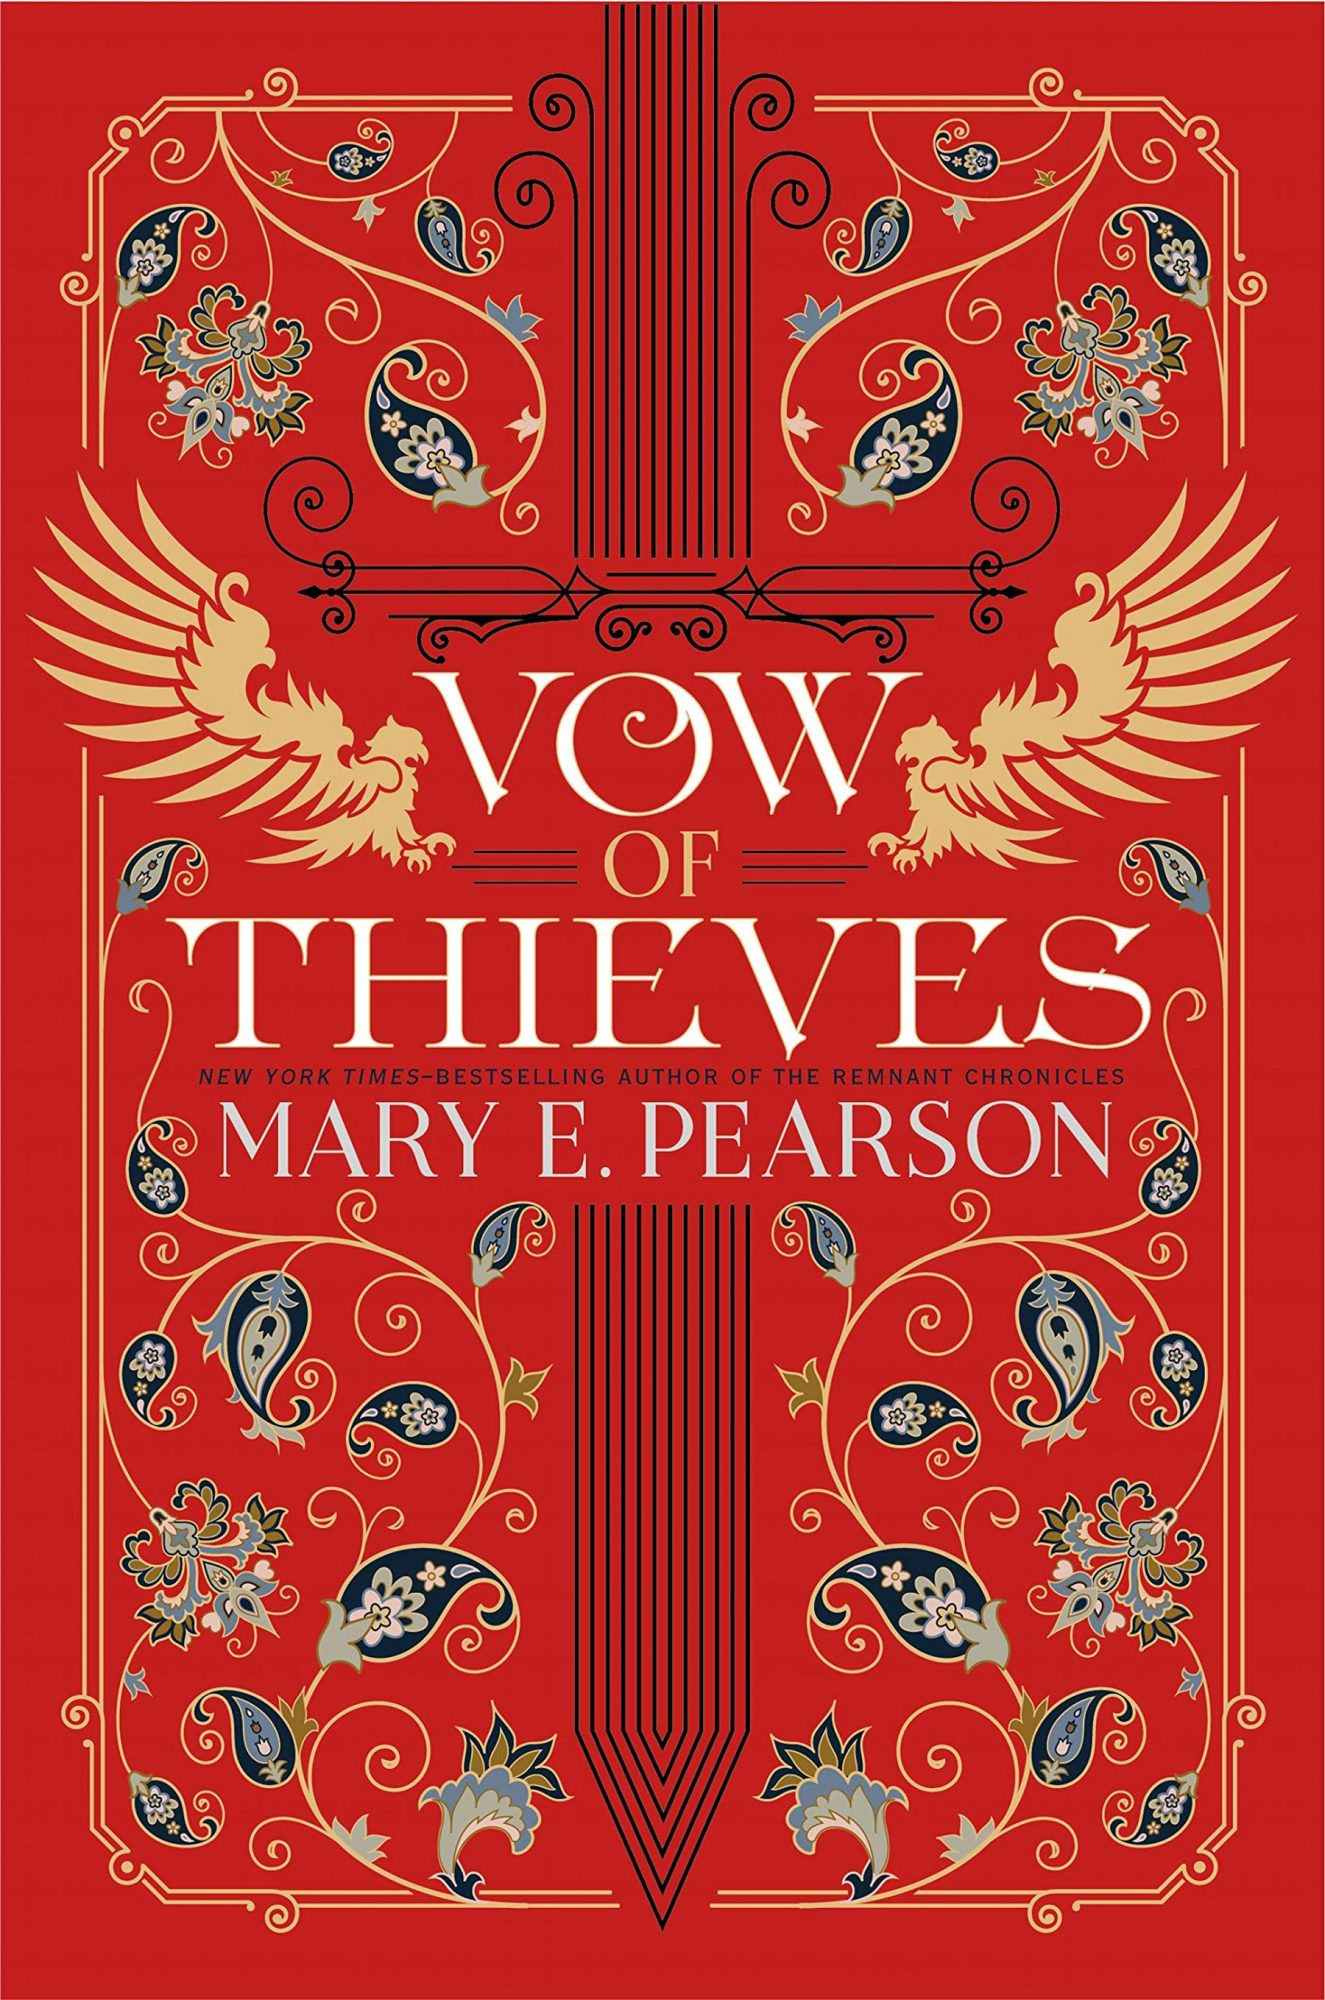 Vow of Thieves by Mary E. PearsonPublisher: Henry Holt and Co.